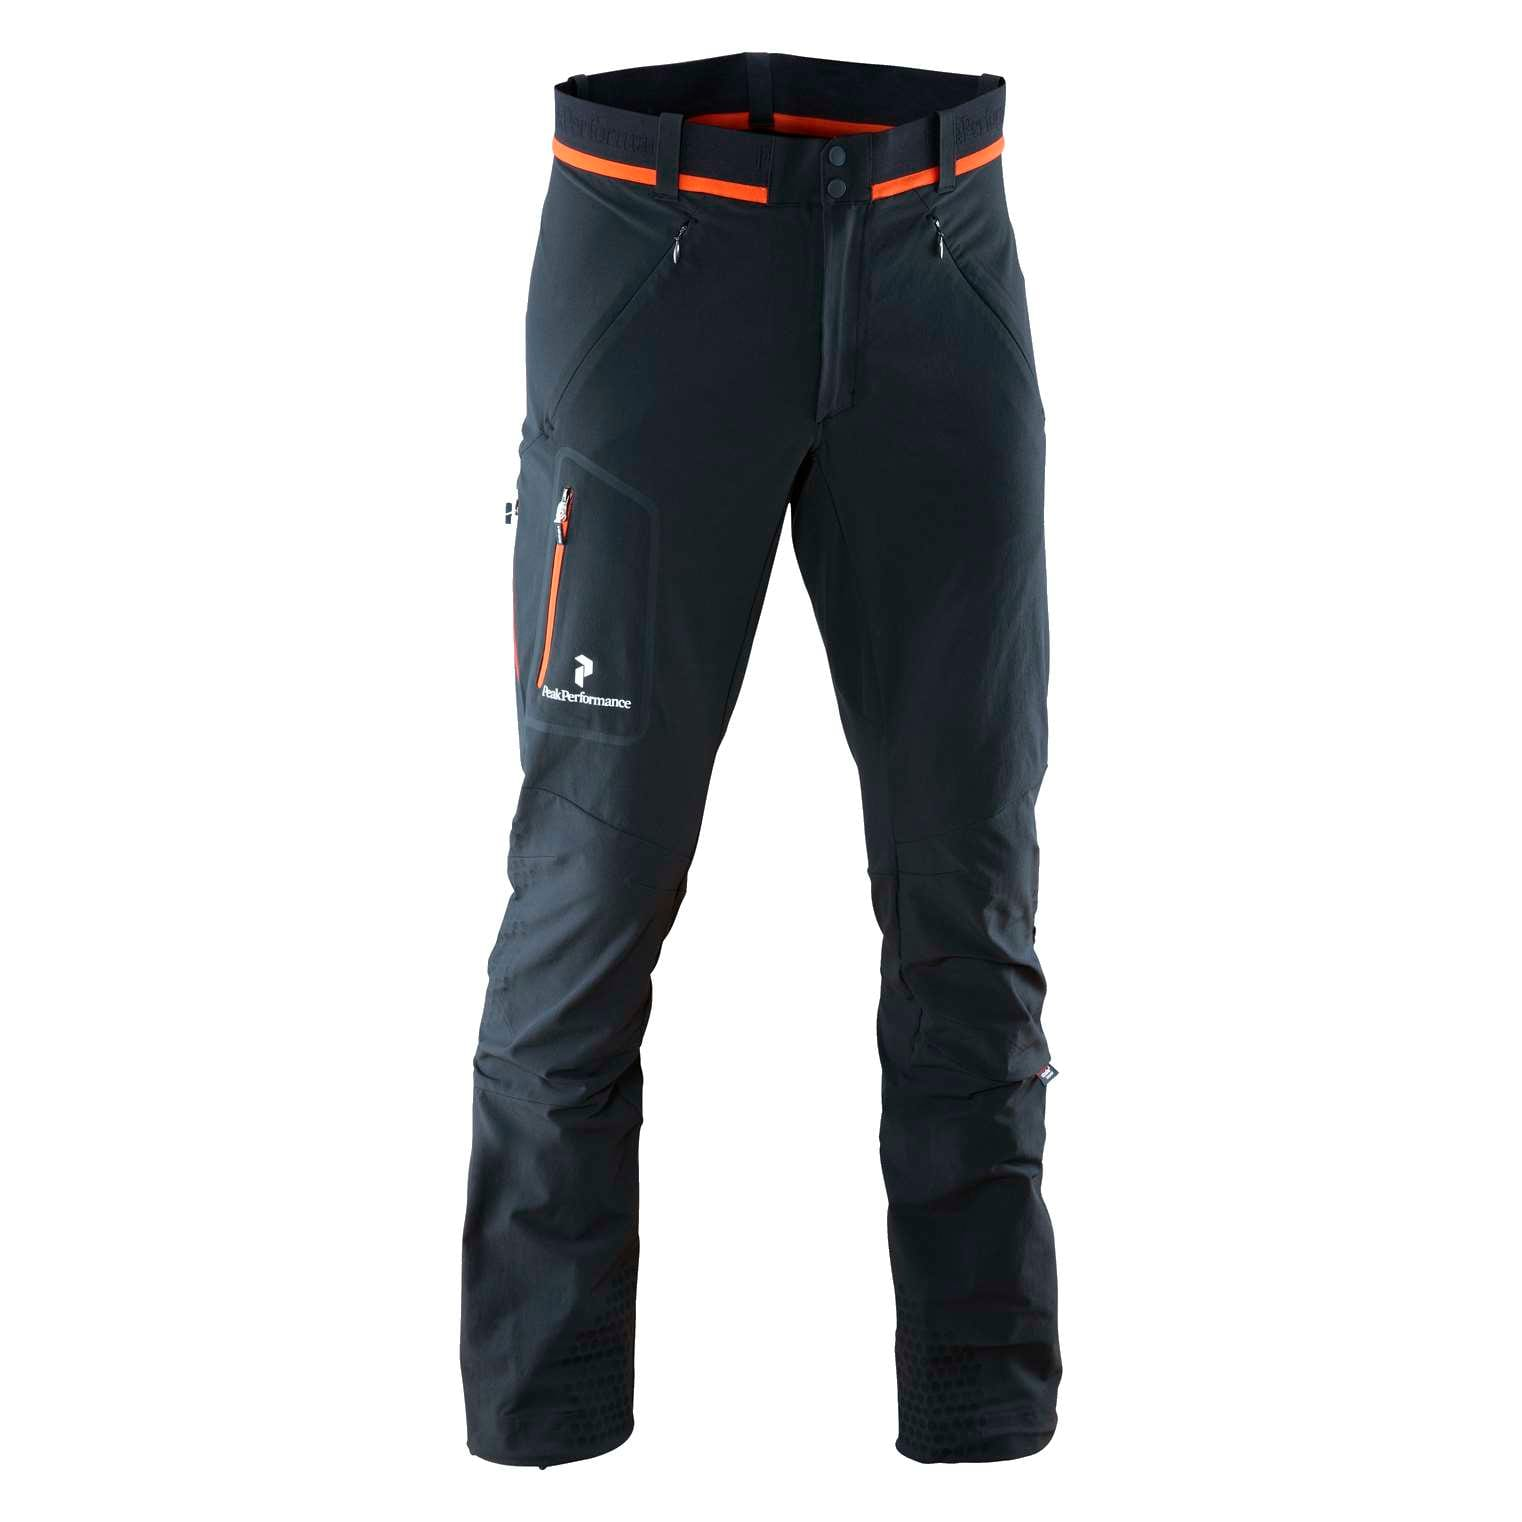 Peak performance softshell pant | FINN.no